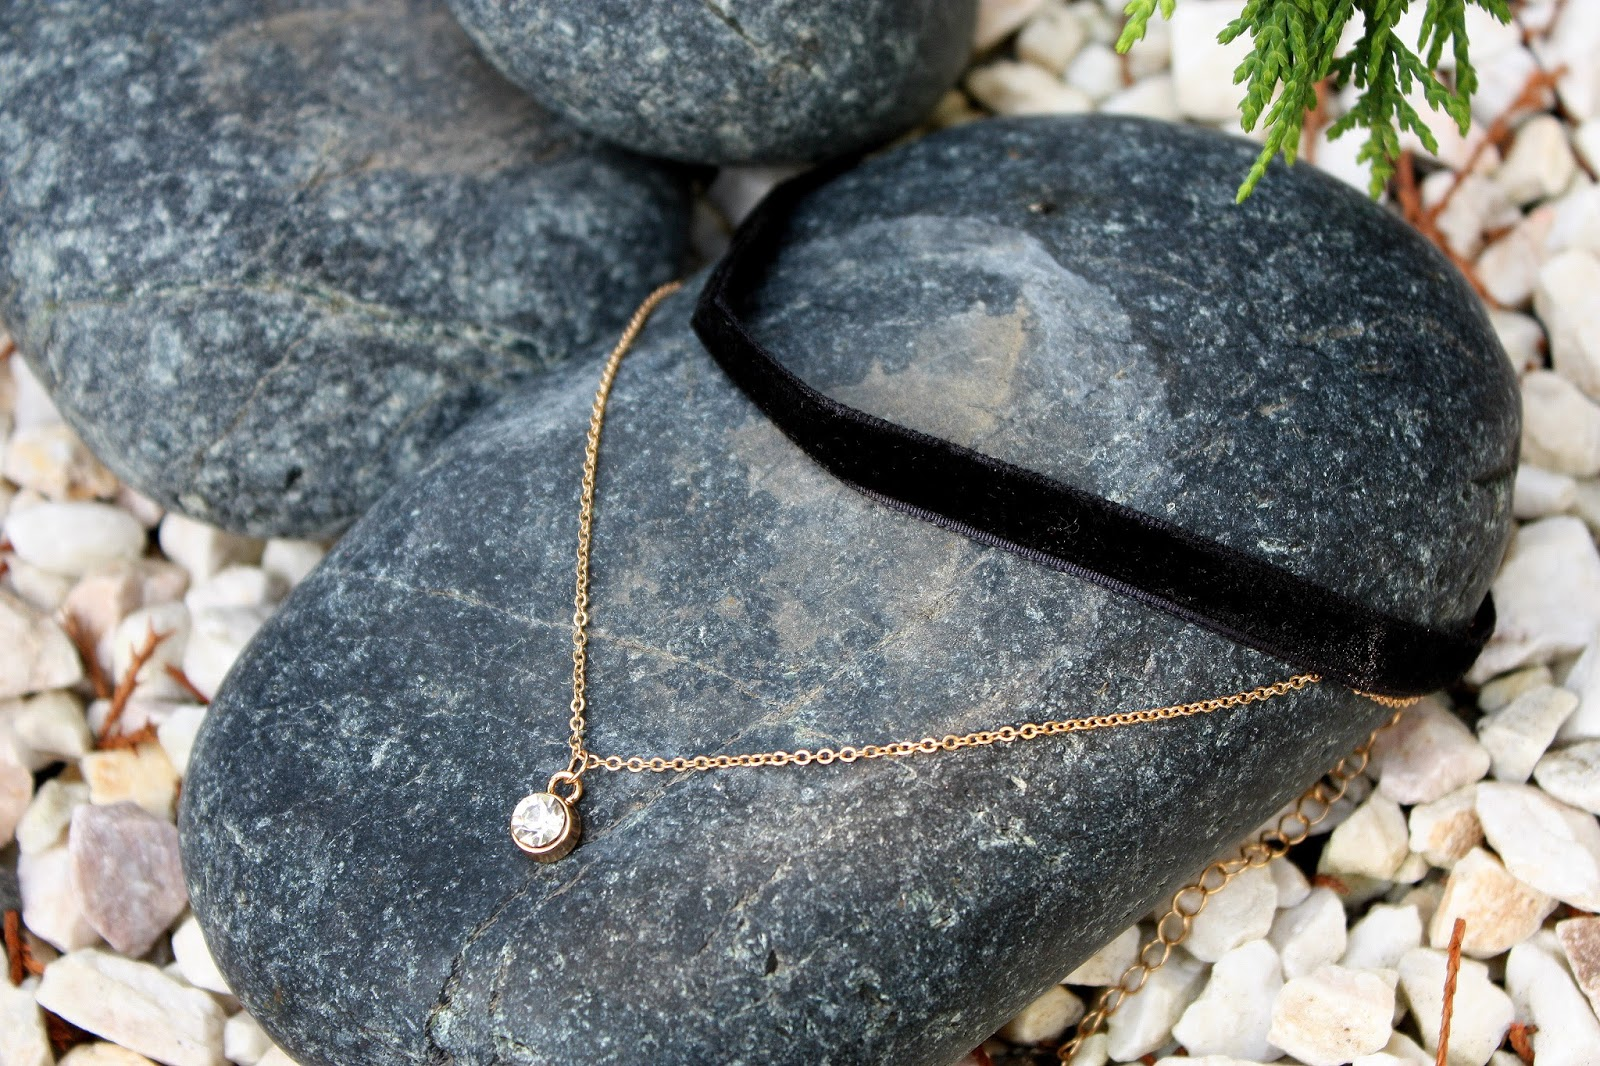 http://www.dresslily.com/faux-pearl-layered-chokers-necklace-product1493347.html?lkid=1505435